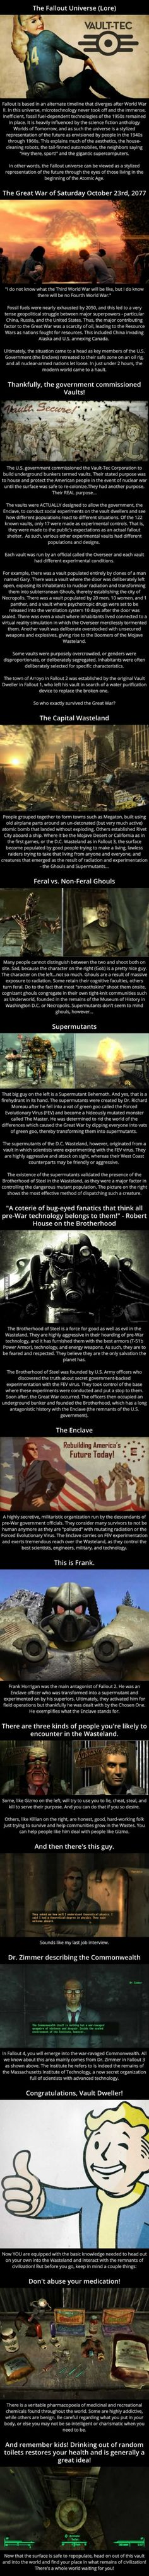 Fallout Universe And Lore The Fallout Universe And Lore MoreThe Fallout Universe And Lore Fallout 4 Funny, Fallout Facts, Fallout New Vegas, Fallout Quotes, Fallout Posters, Fallout Lore, Cultura Nerd, Video Game Memes, Post Apocalypse